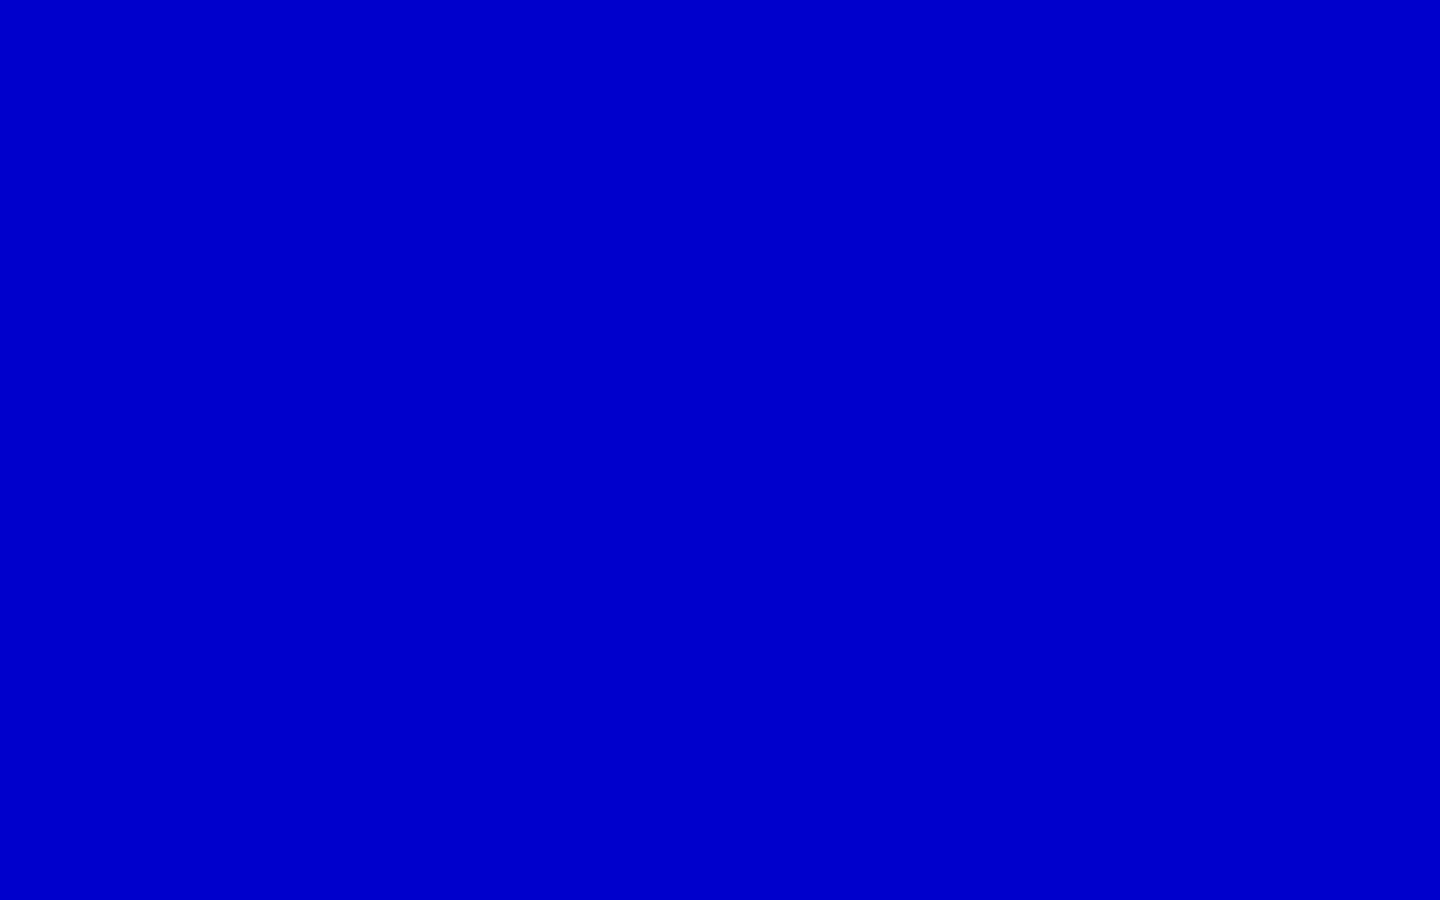 1440x900 Medium Blue Solid Color Background